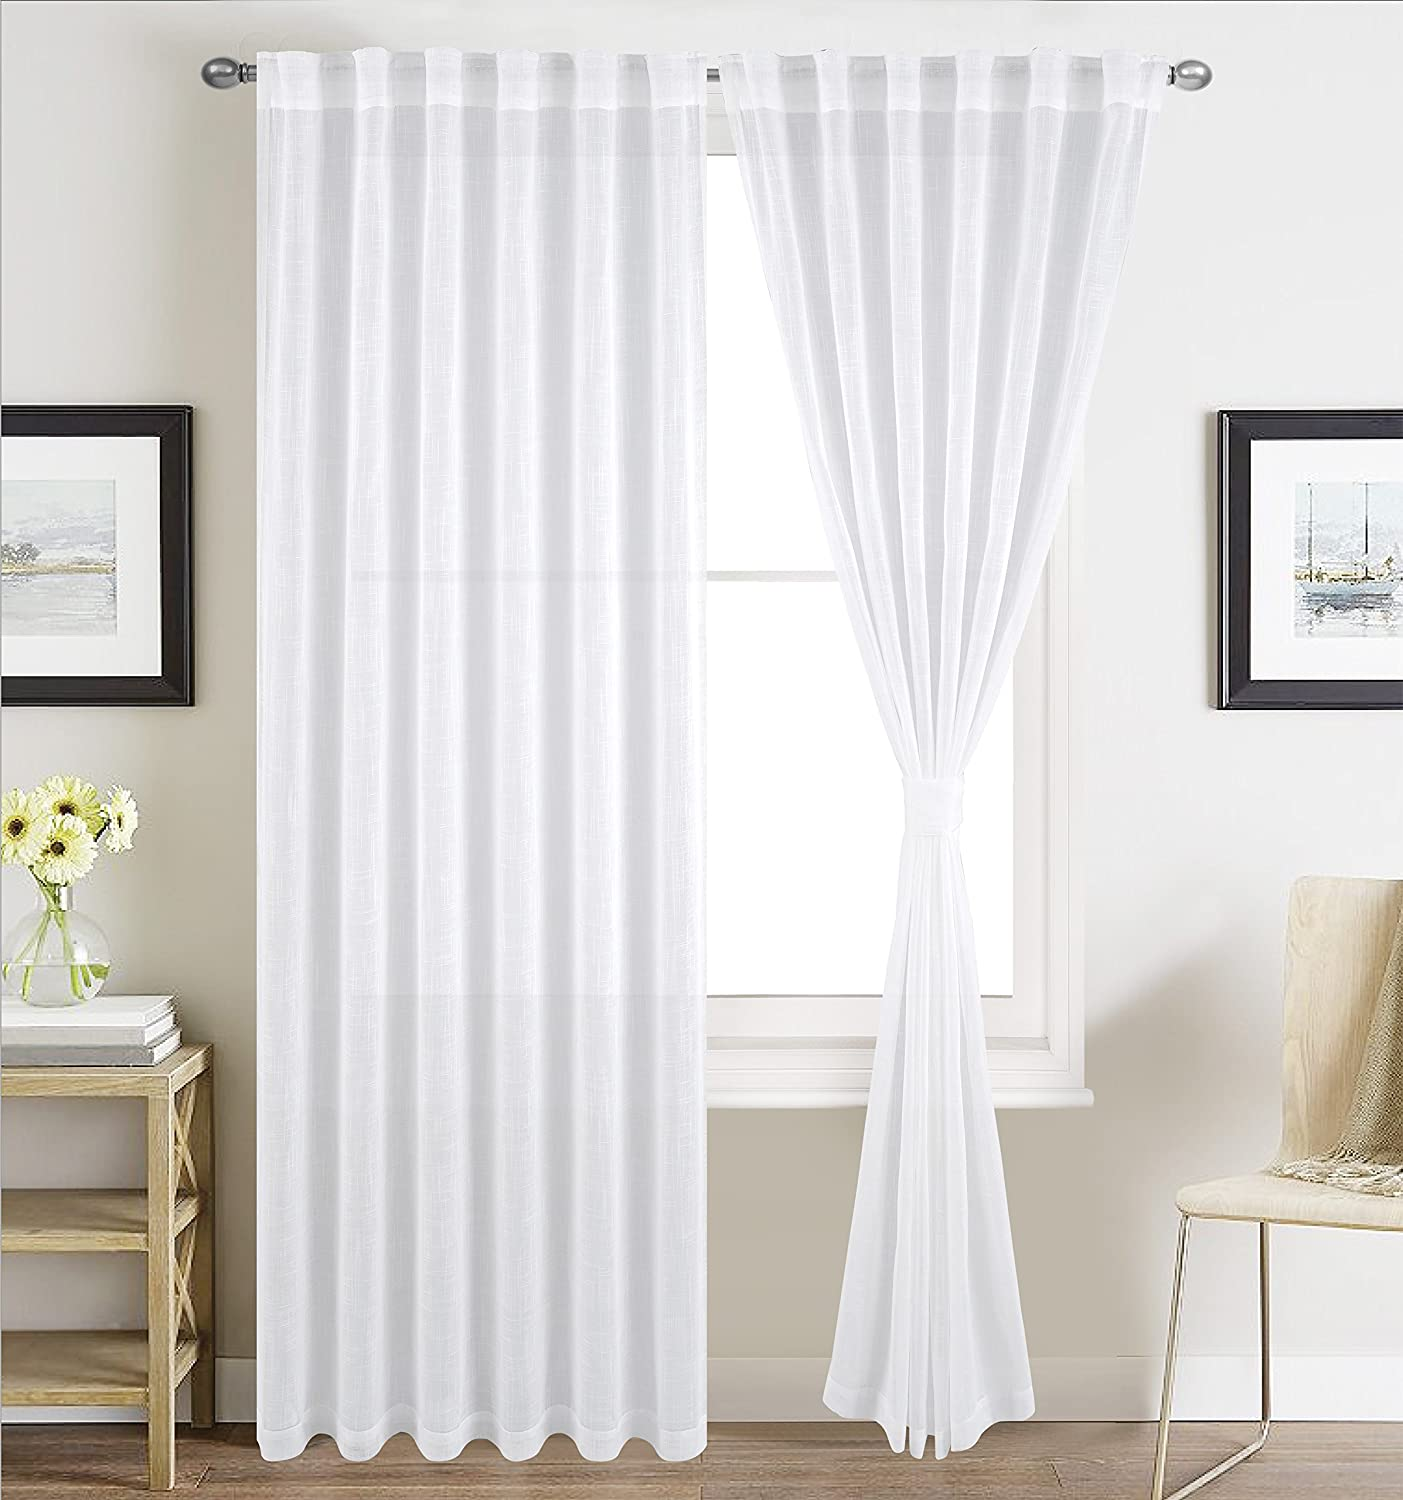 BETTER HOME USA BHU Faux Linen Sheer Curtains for Bedroom, Window Treatment Sheer Curtain Pnaels, Rod Pocket and Back Tab, Set of 2 Panels, W54 by L84, White